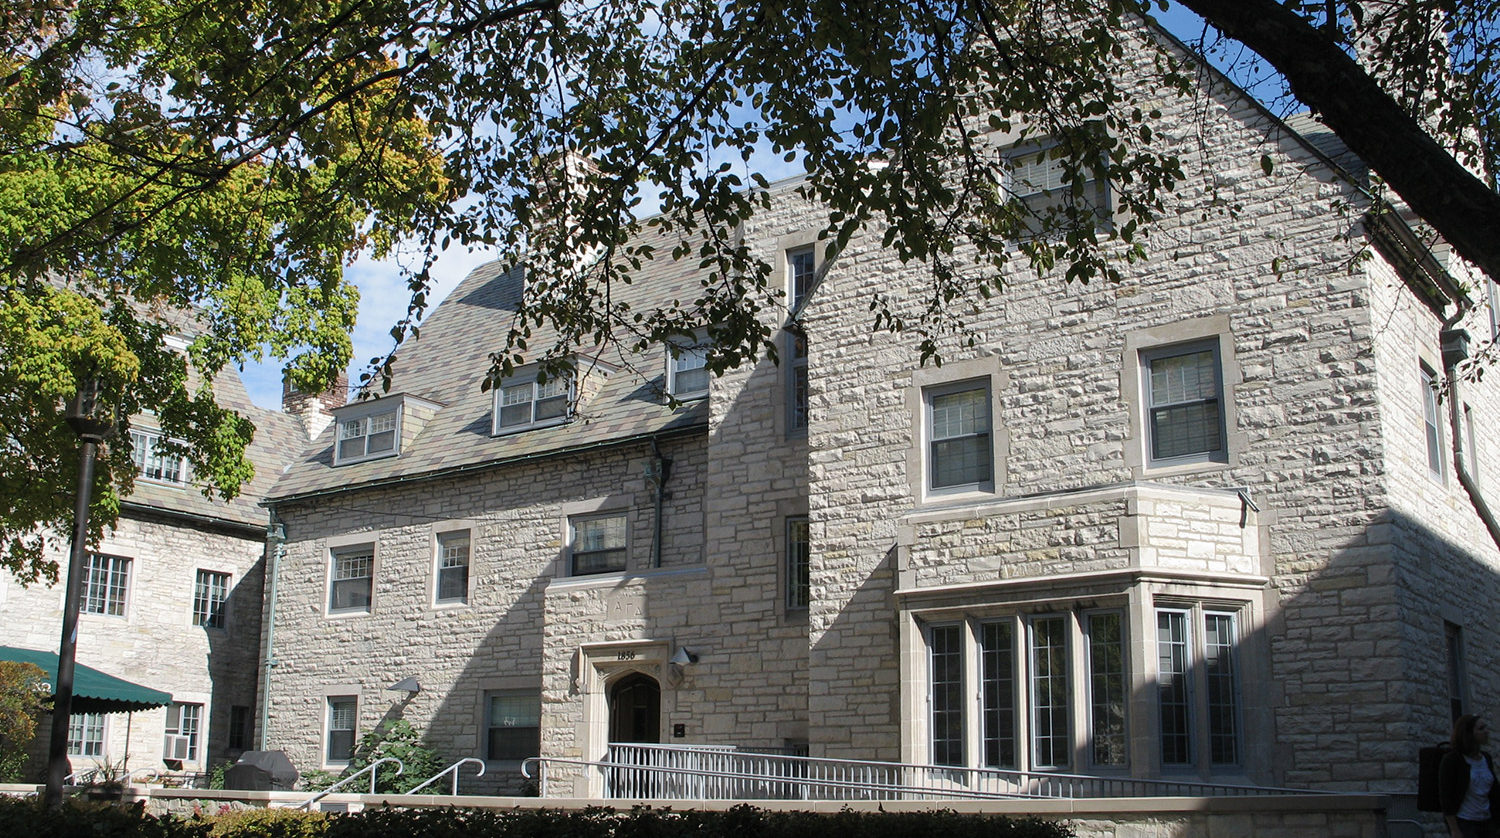 Northwestern University 1856 Orrington Residence Hall exterior